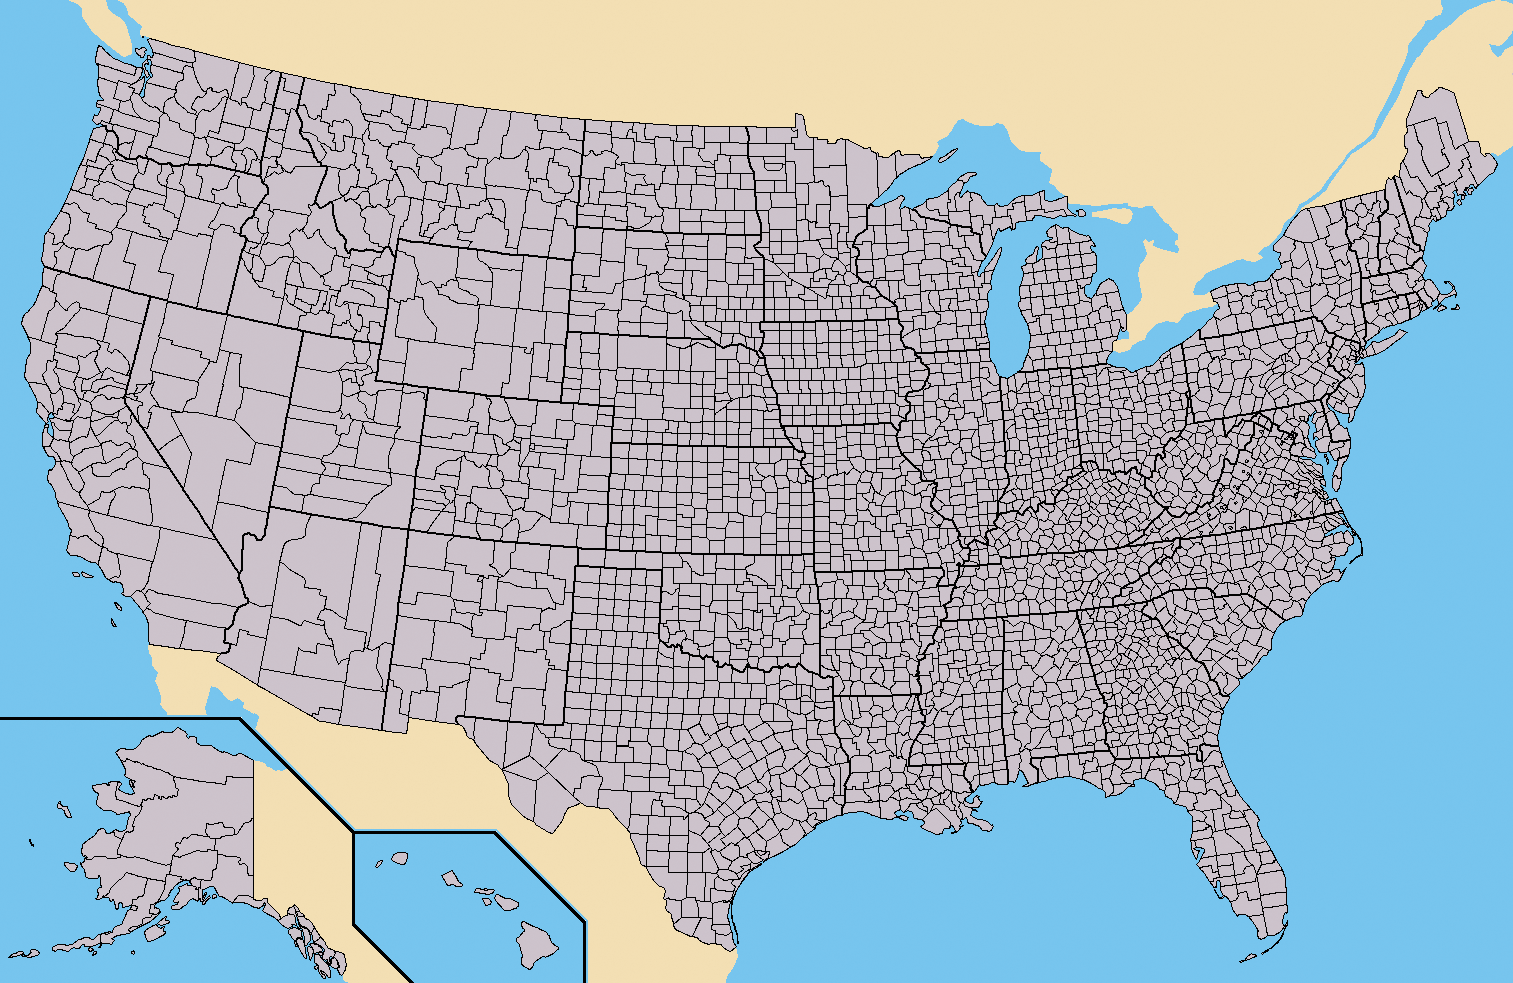 Federal Government Of The United States Wikipedia - Blank map of the united states wikipedia